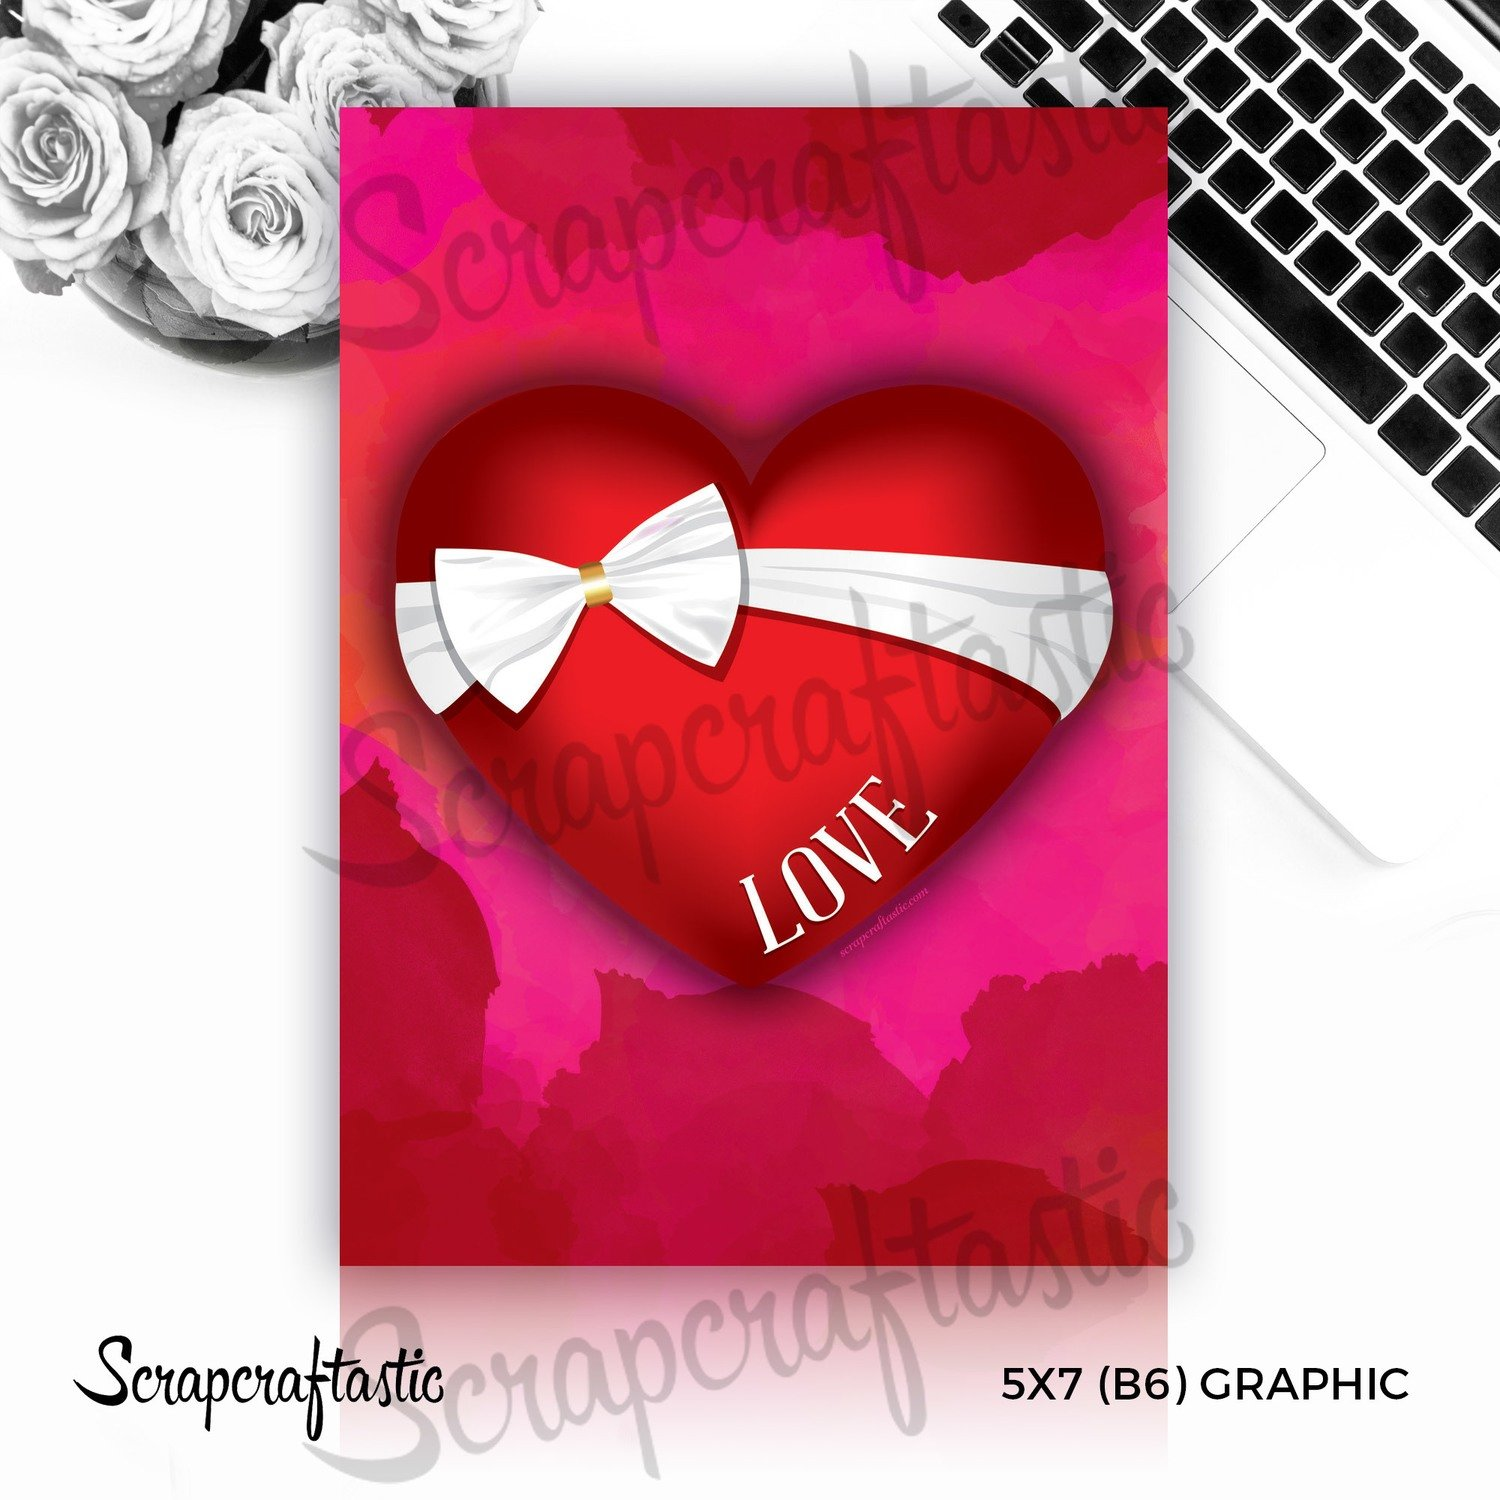 Bow Love Heart Free 5x7 (B6) Graphic Digital Download